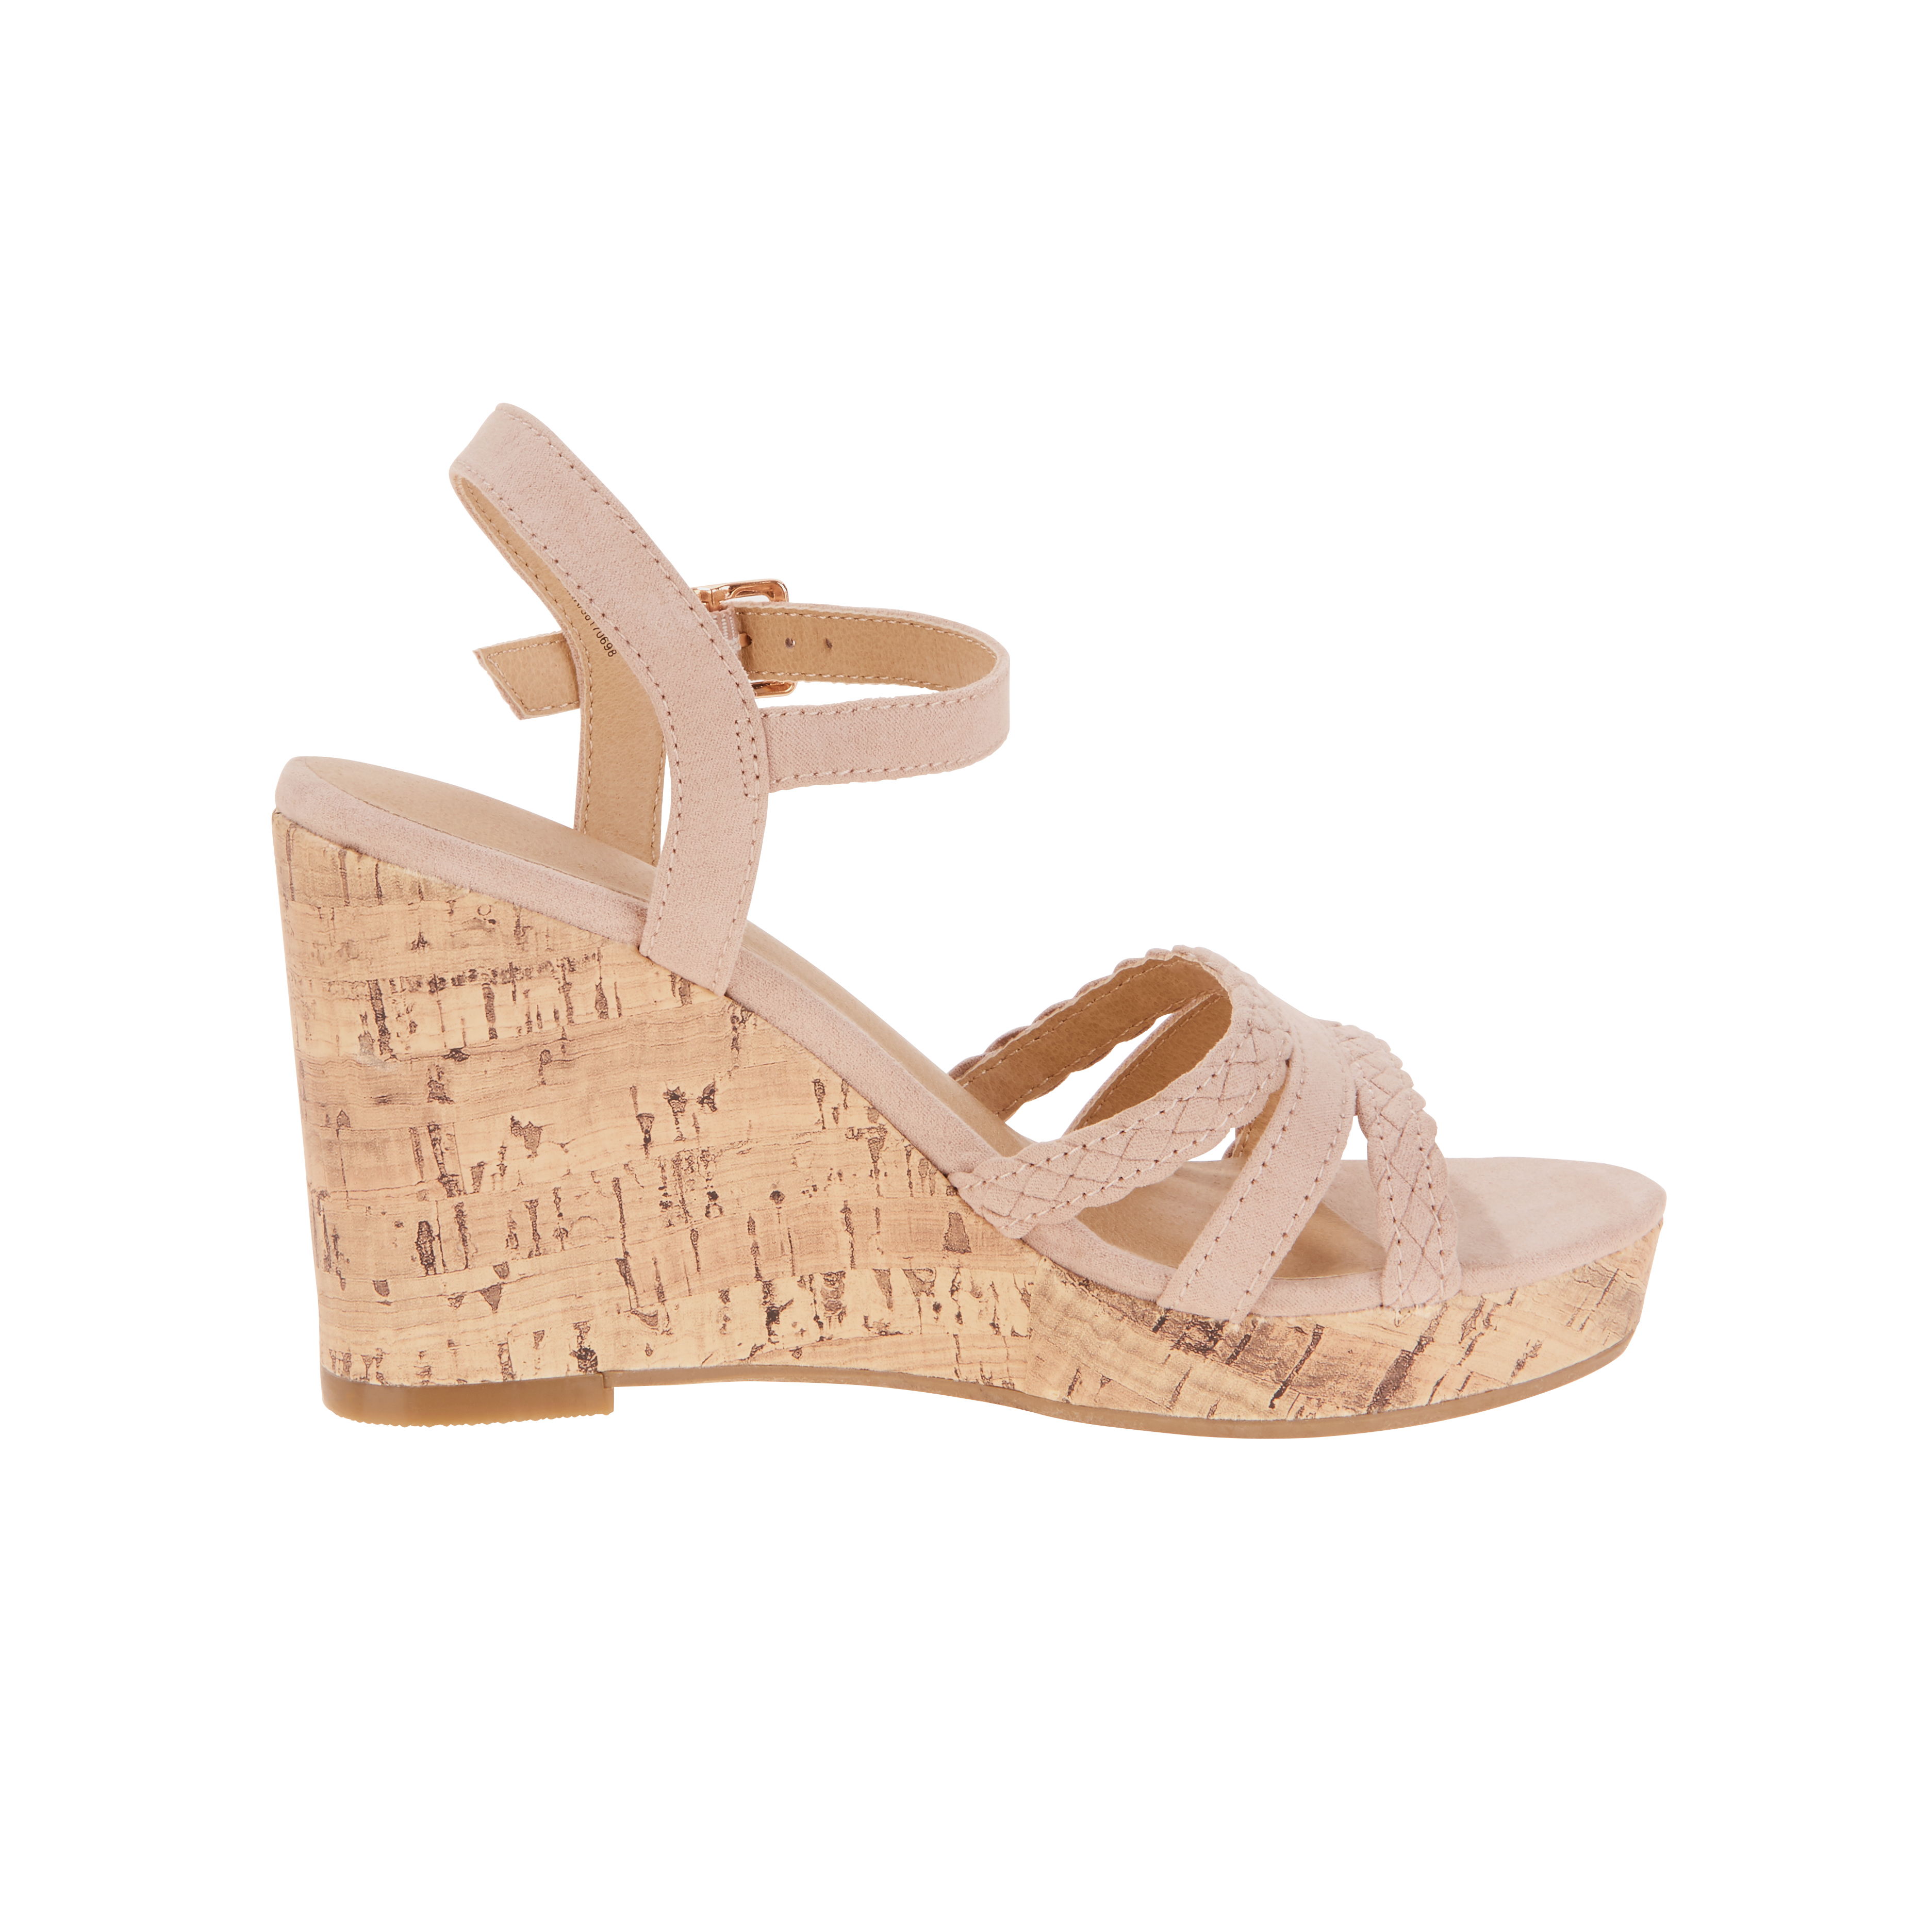 2bb5141c86e88 Time and Tru - Time and Tru Women s Strap Wedge Sandal - Walmart.com